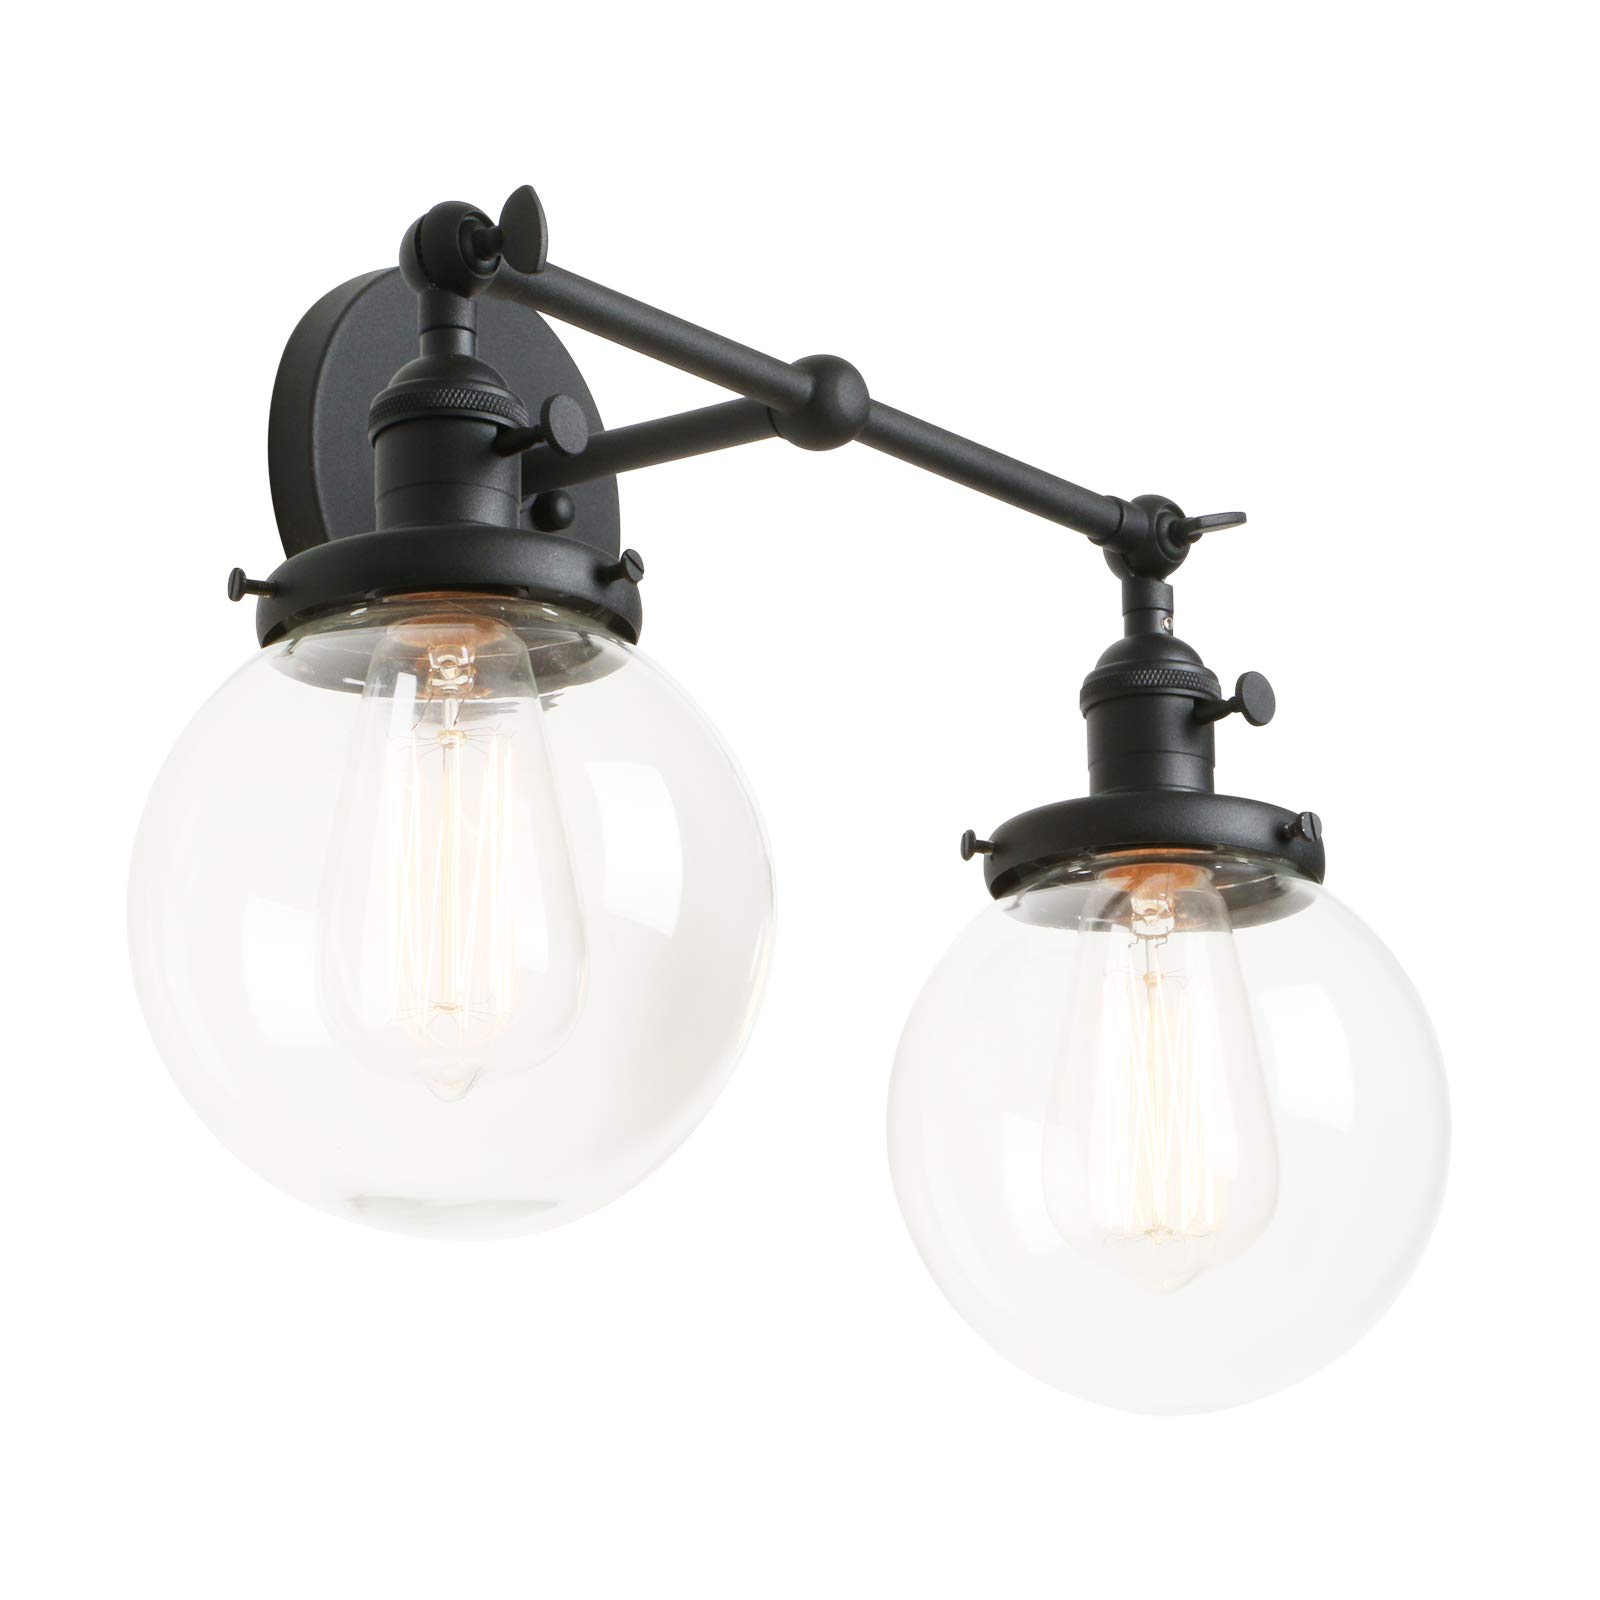 """Phansthy Glass Wall Sconce 2 Light Industrial Wall Sconce 5.9"""" Edison Globe Wall Light Shade"""